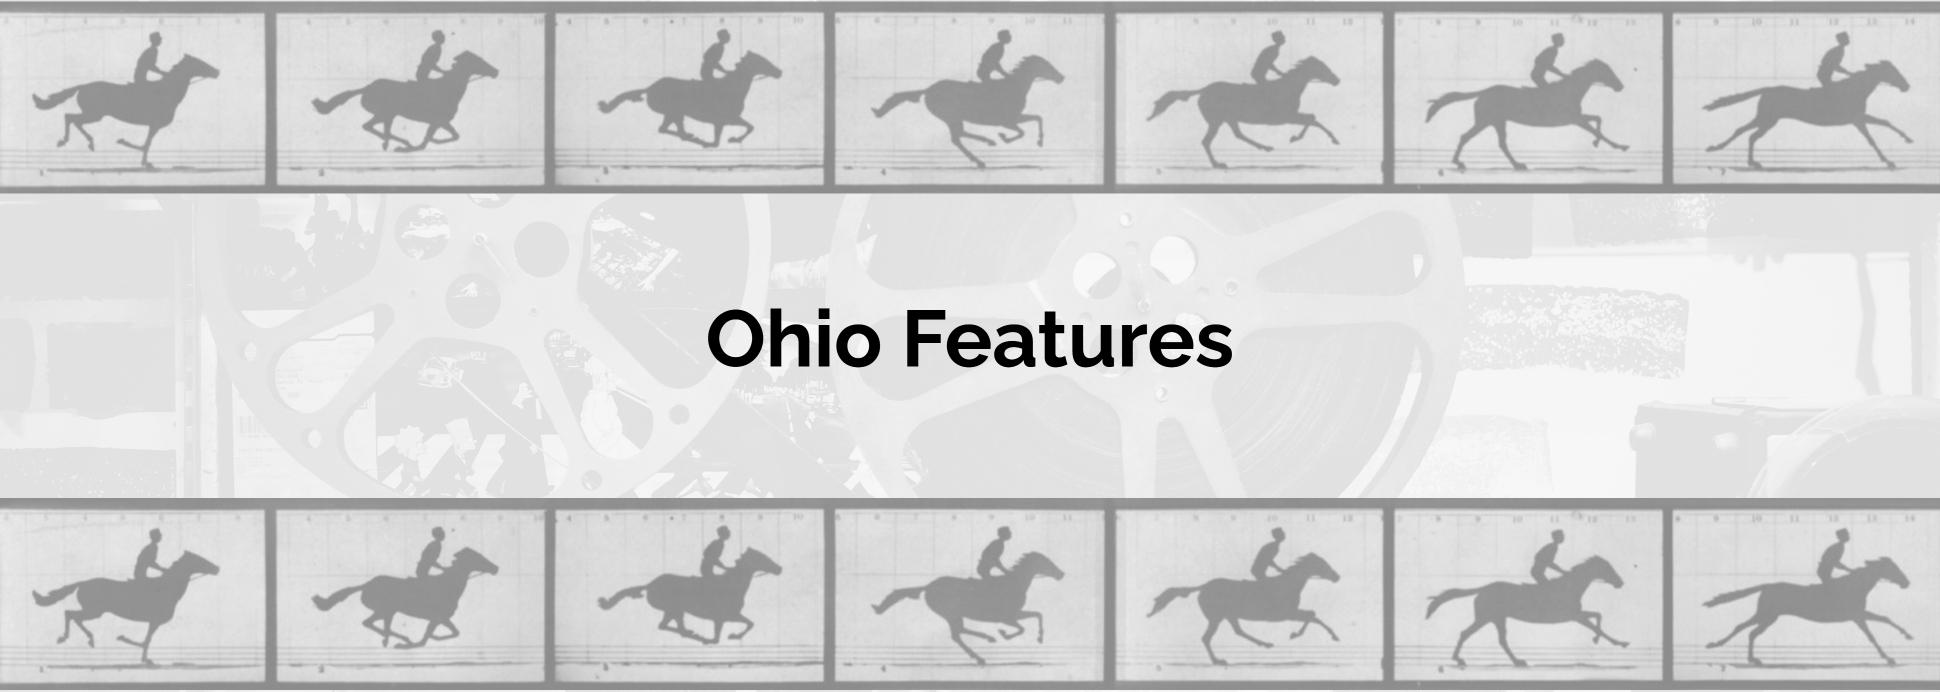 Ohio Features